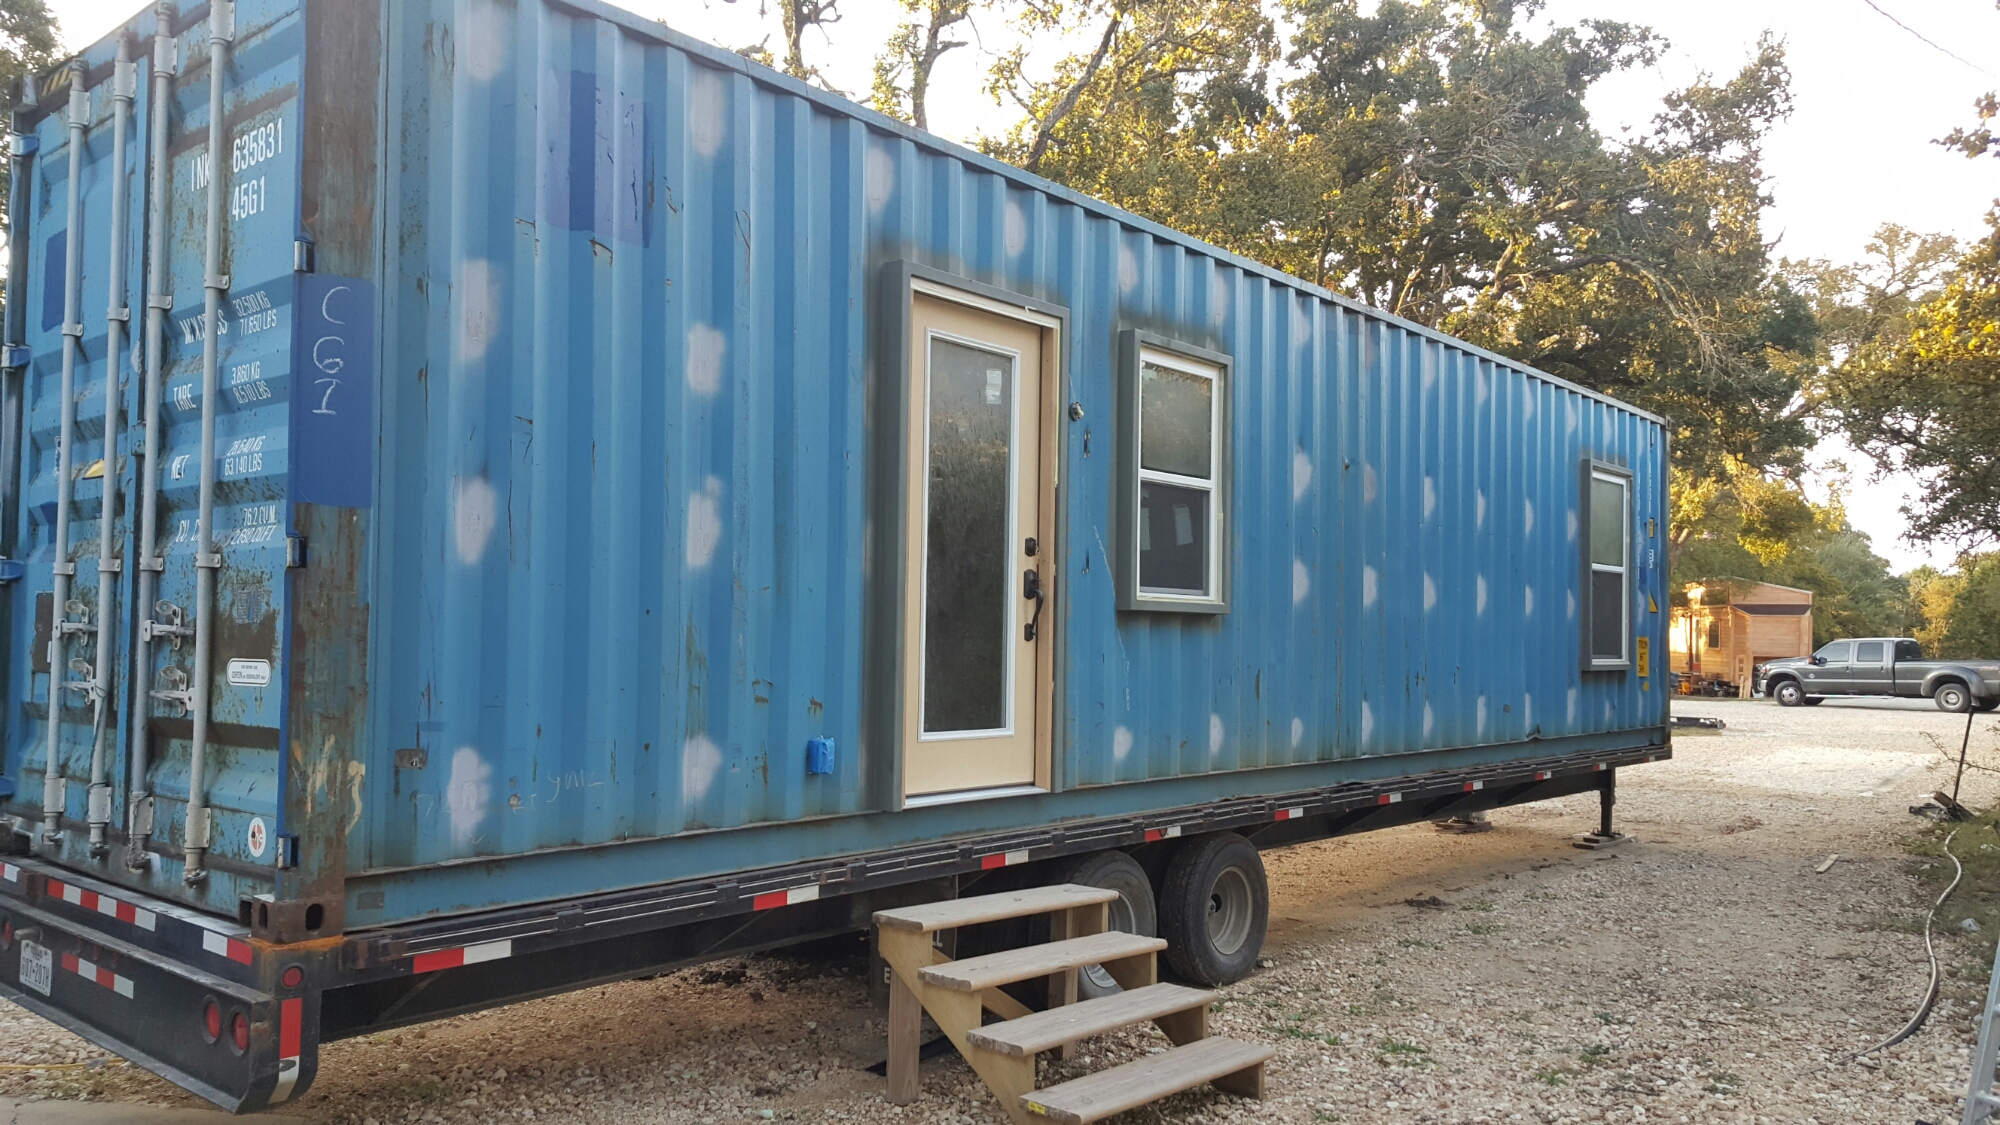 Siding for mobile homes spillo caves - Mobile shipping container homes ...